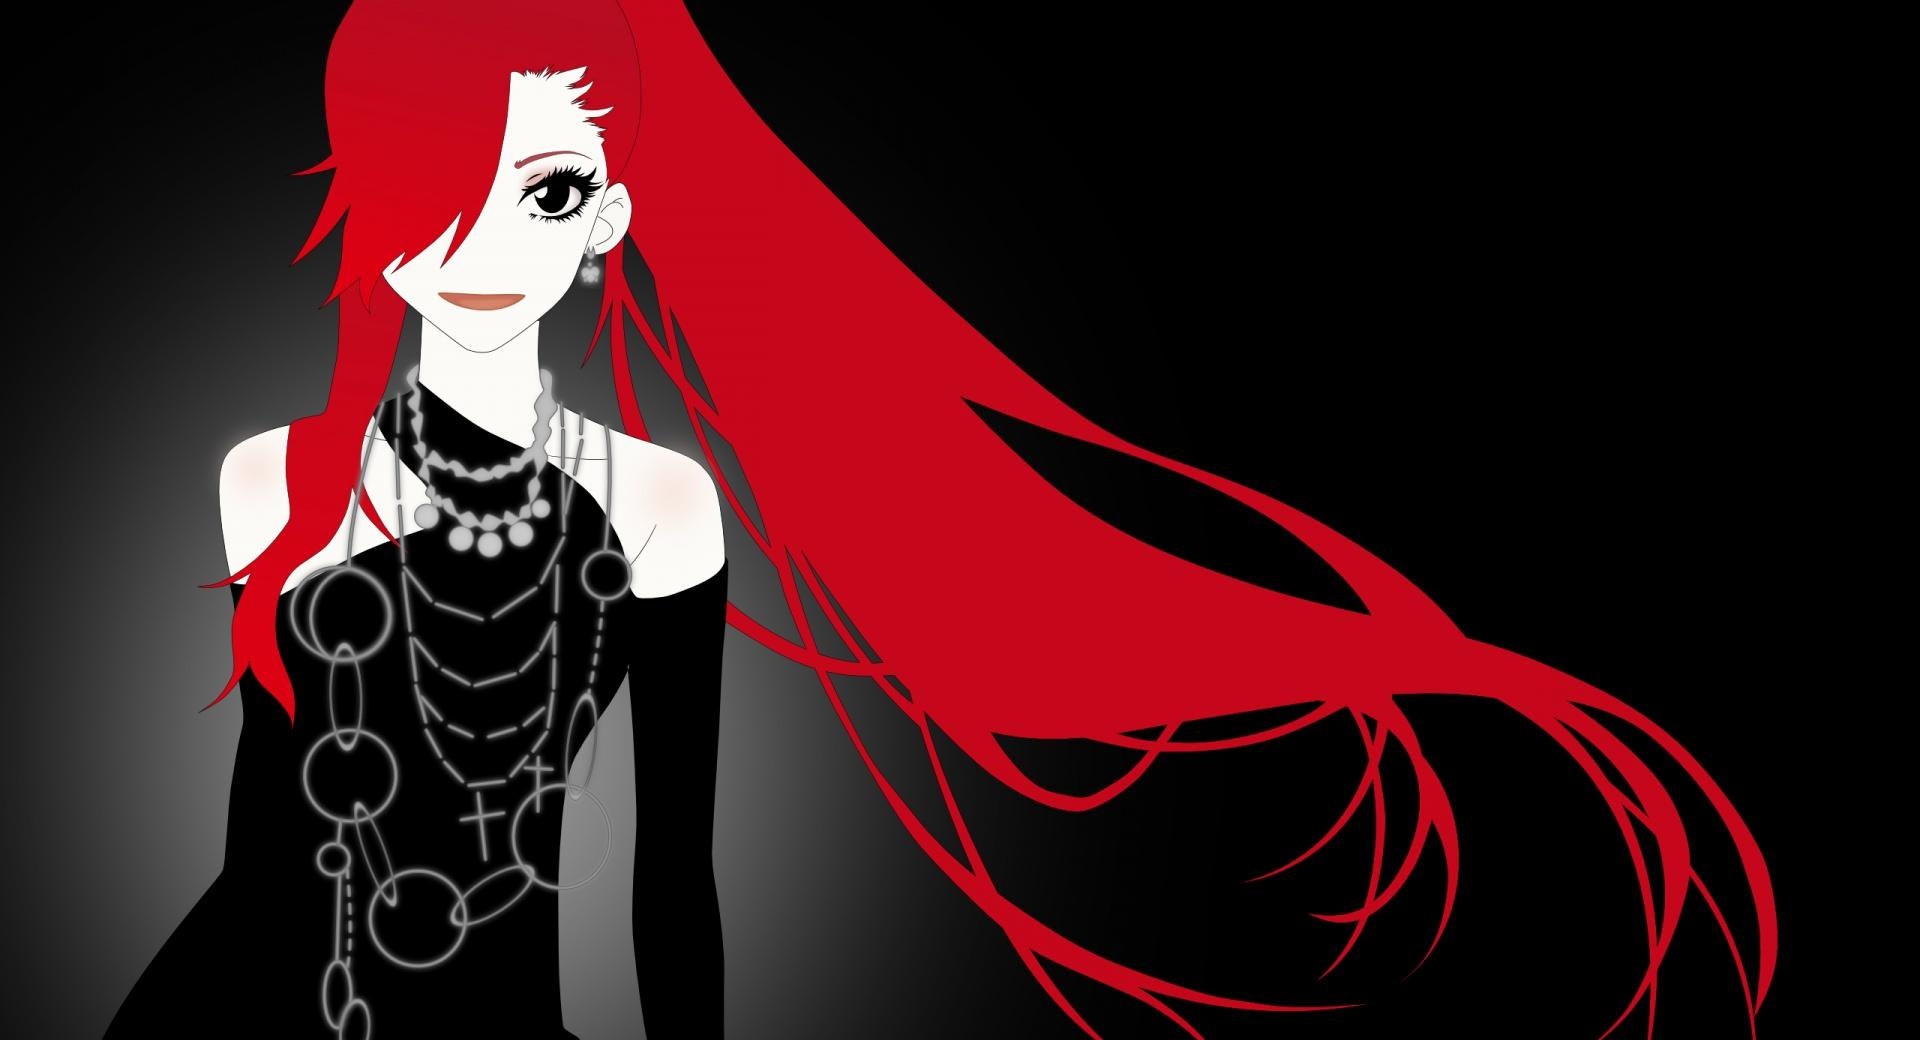 Anime Girl With Red Hair wallpapers HD quality